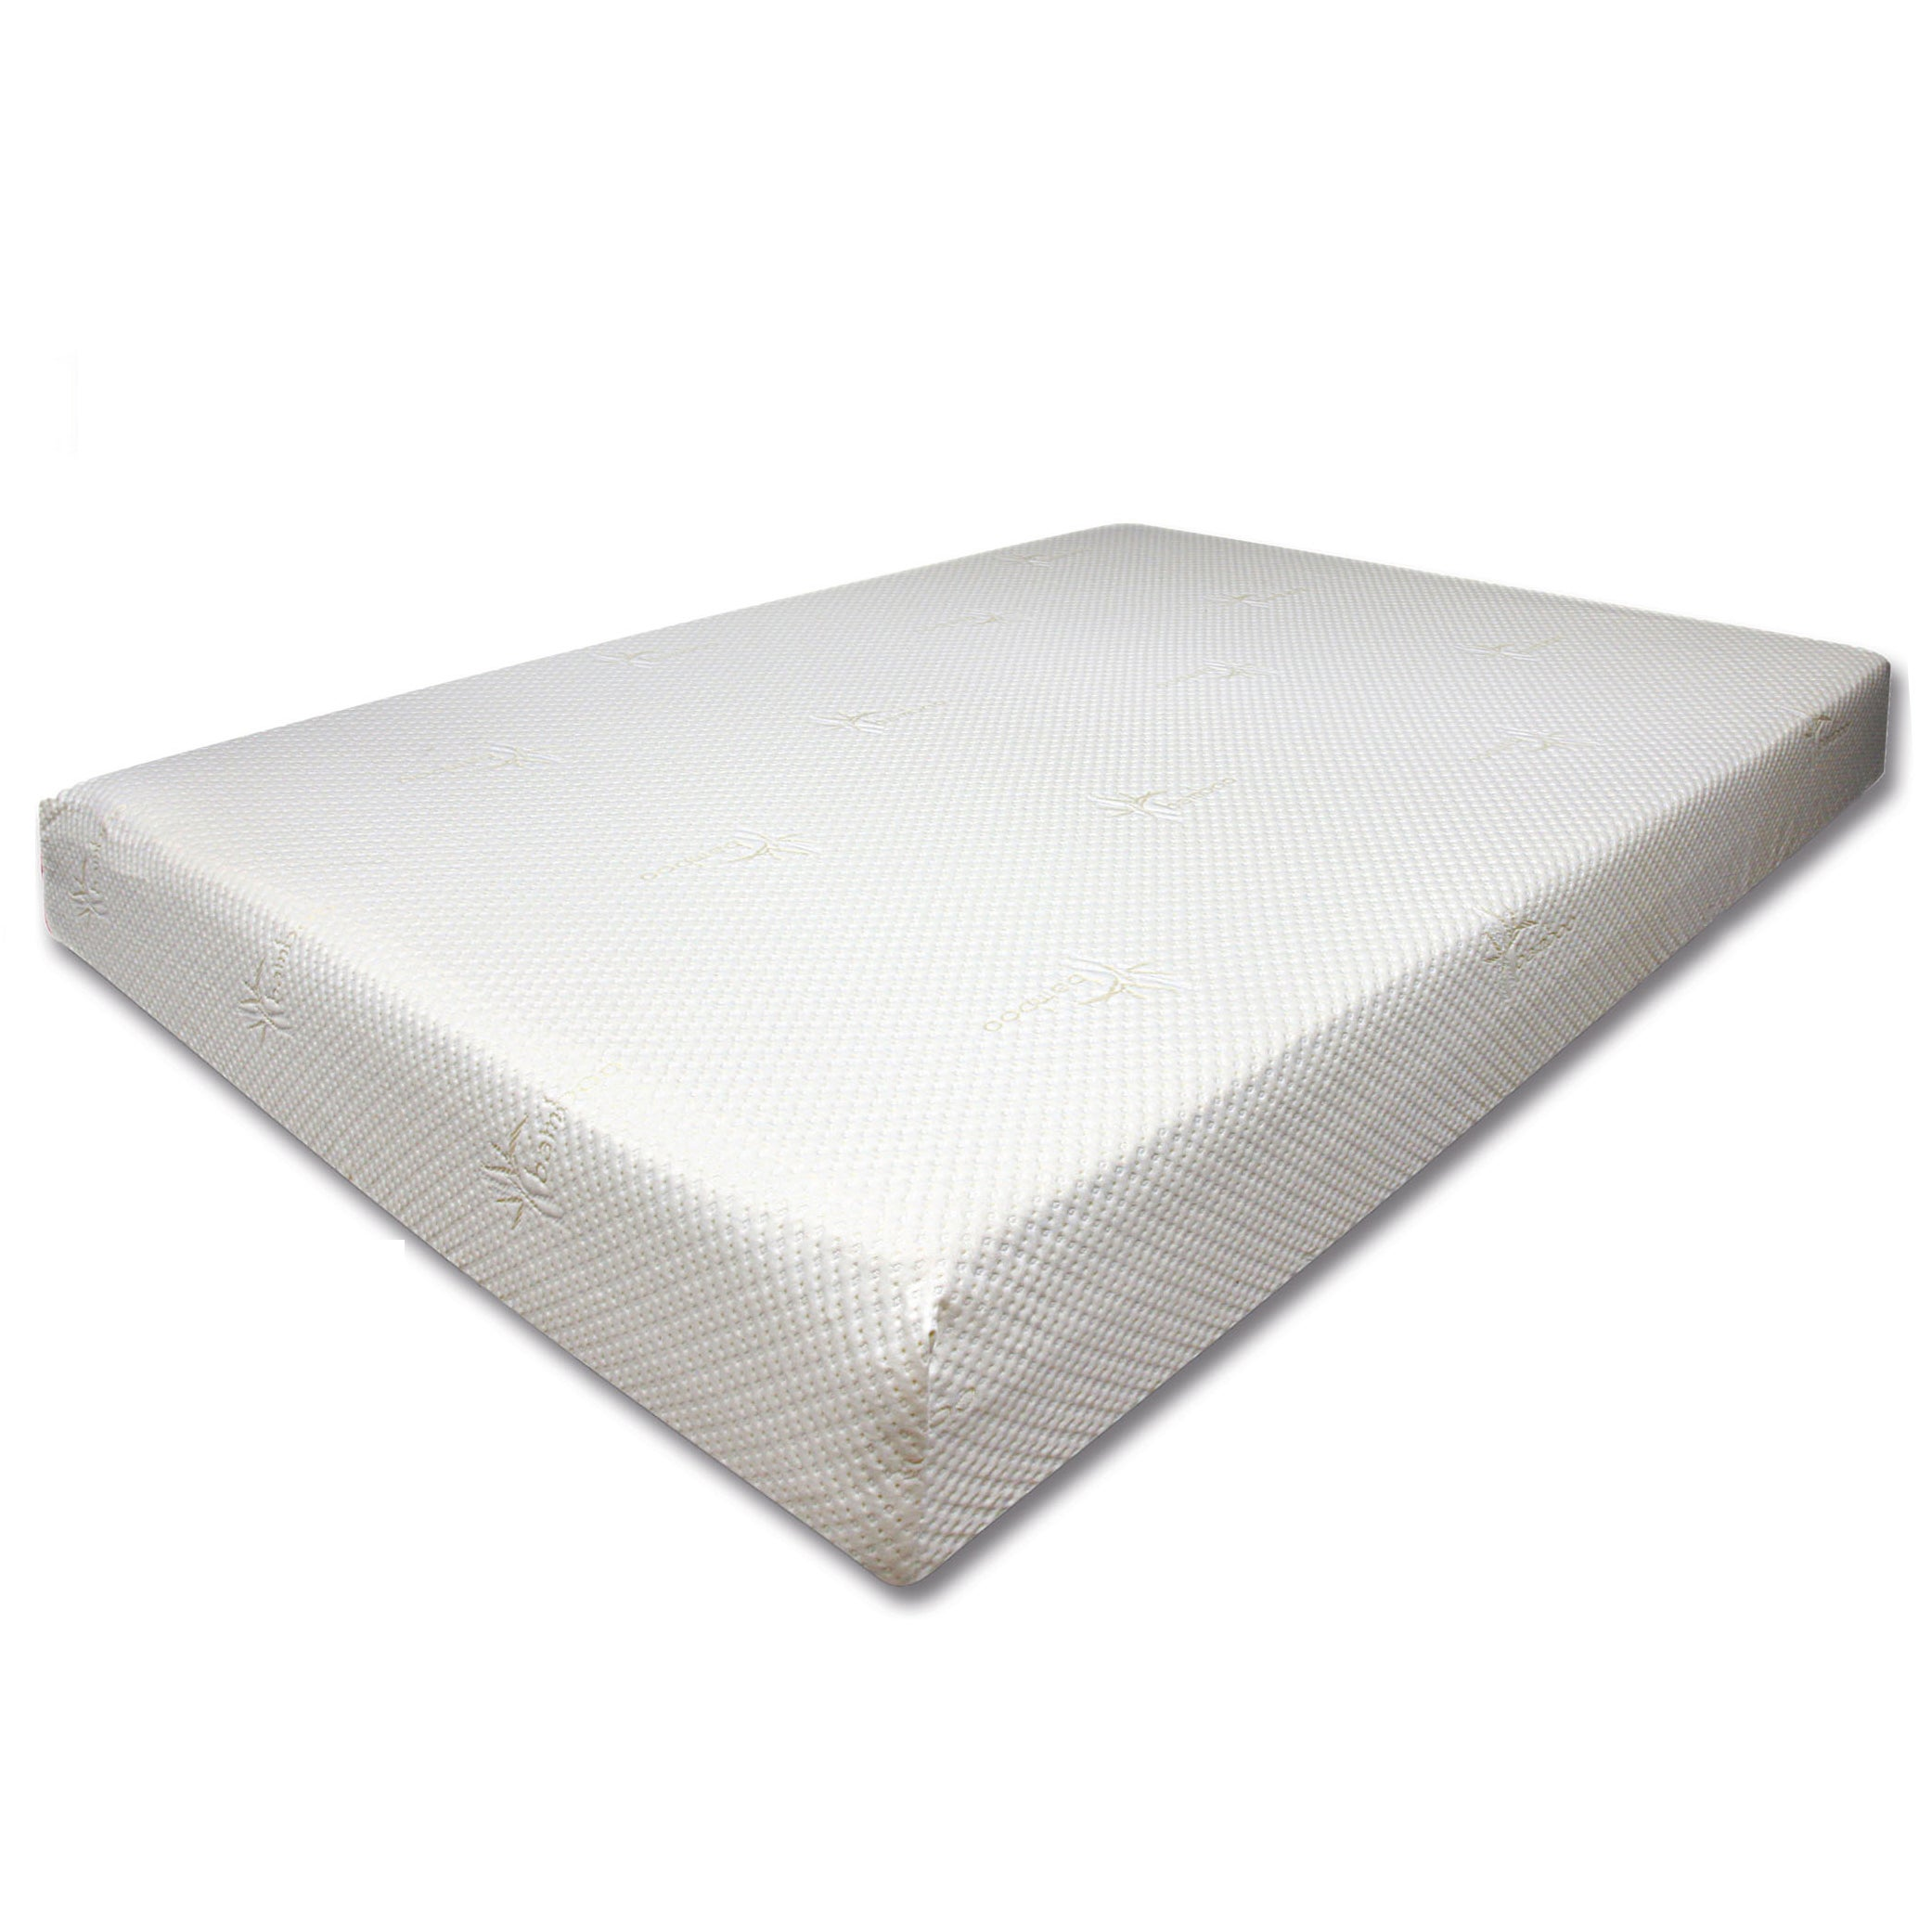 dreamax therapeutic high density 10 inch full size memory foam